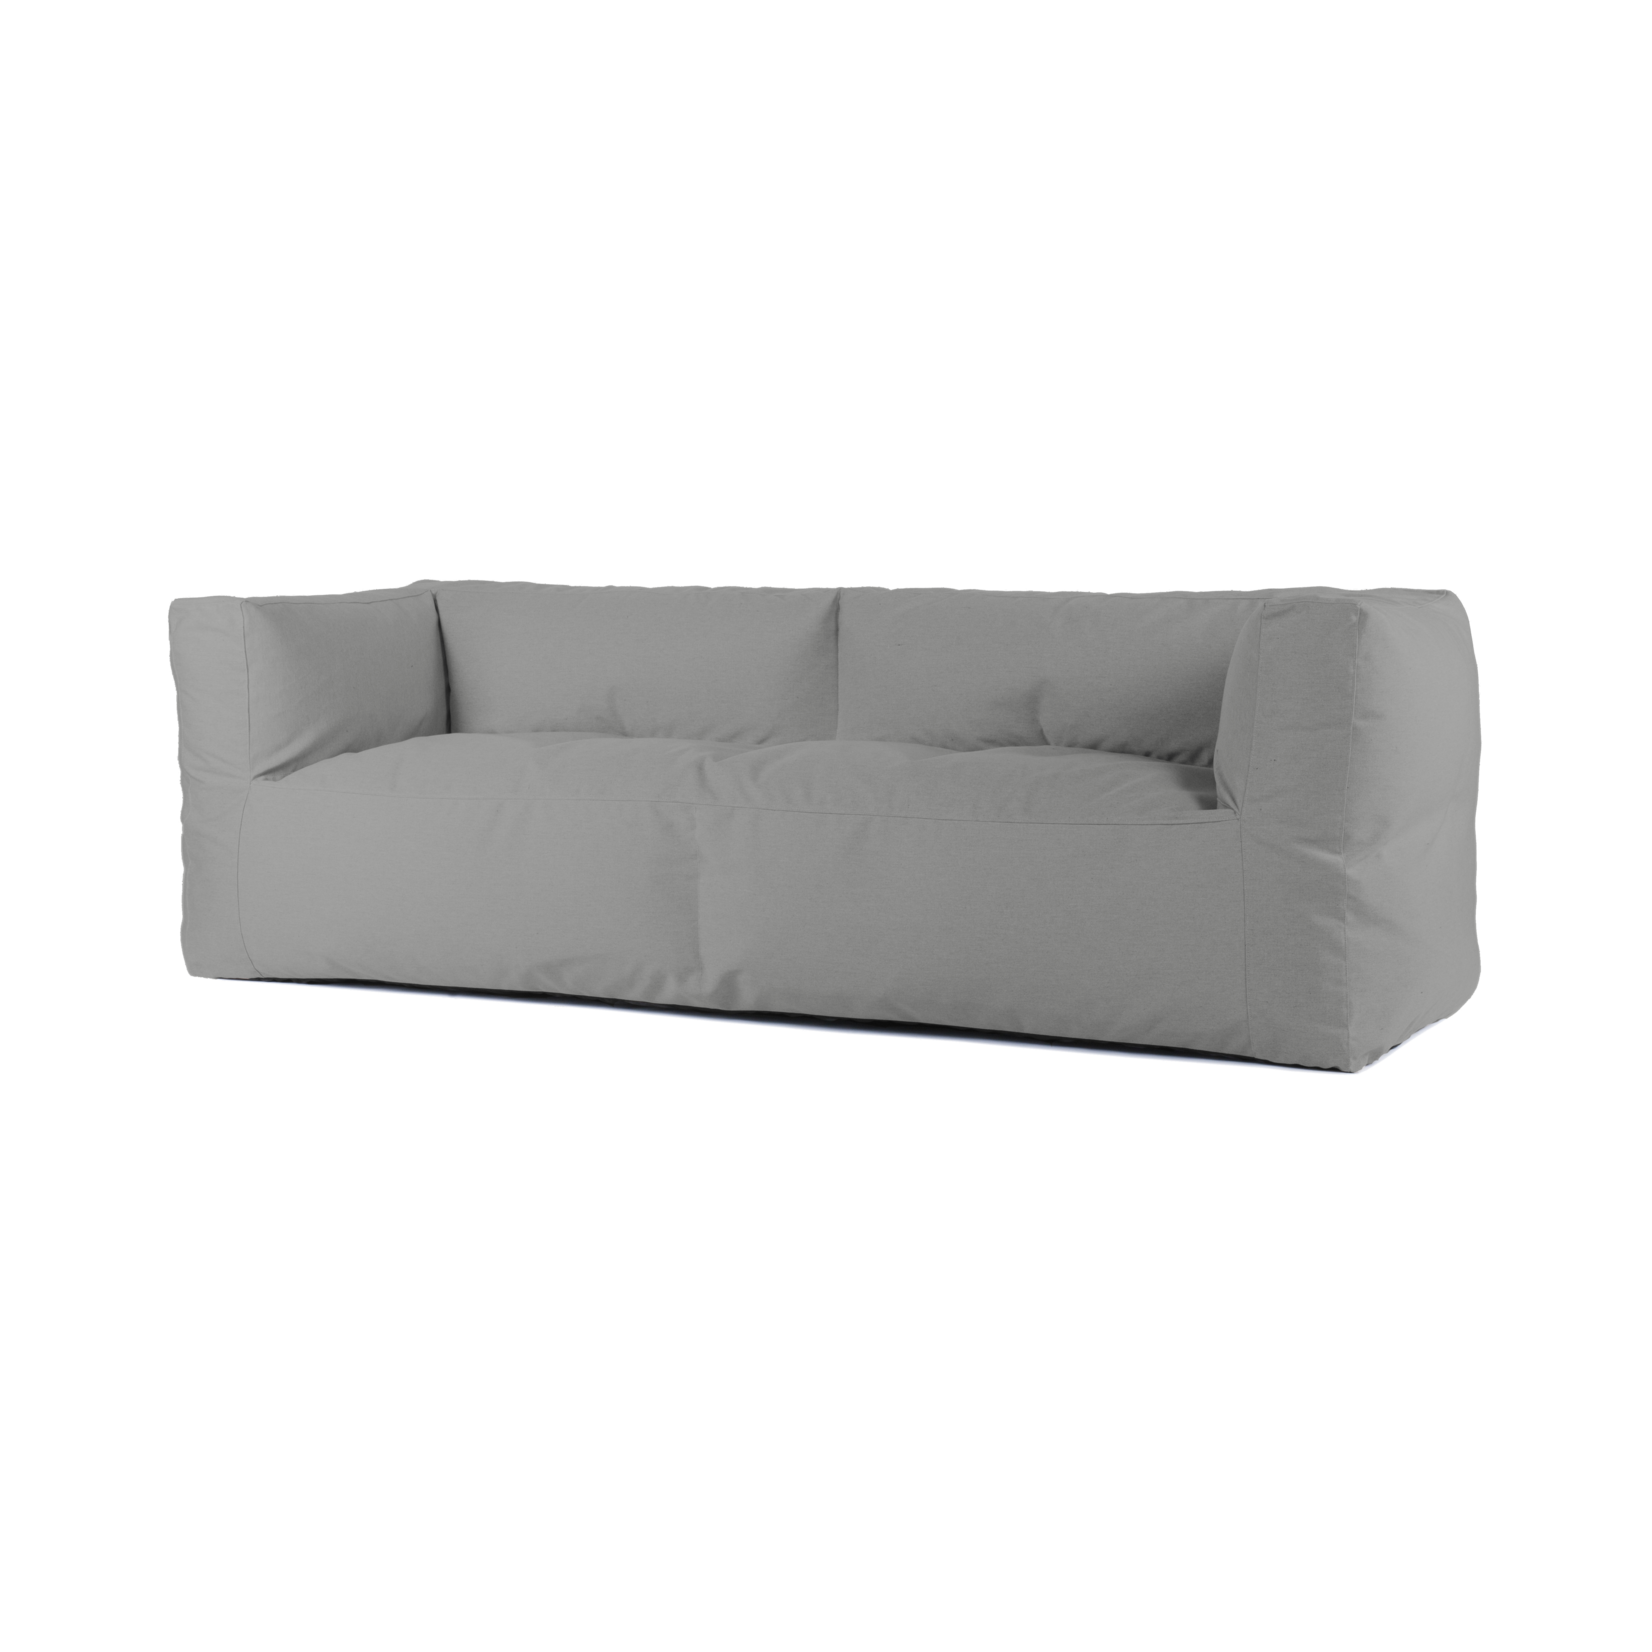 Bryck Bryck Couch   Three seat   SMOOTH COLLECTION